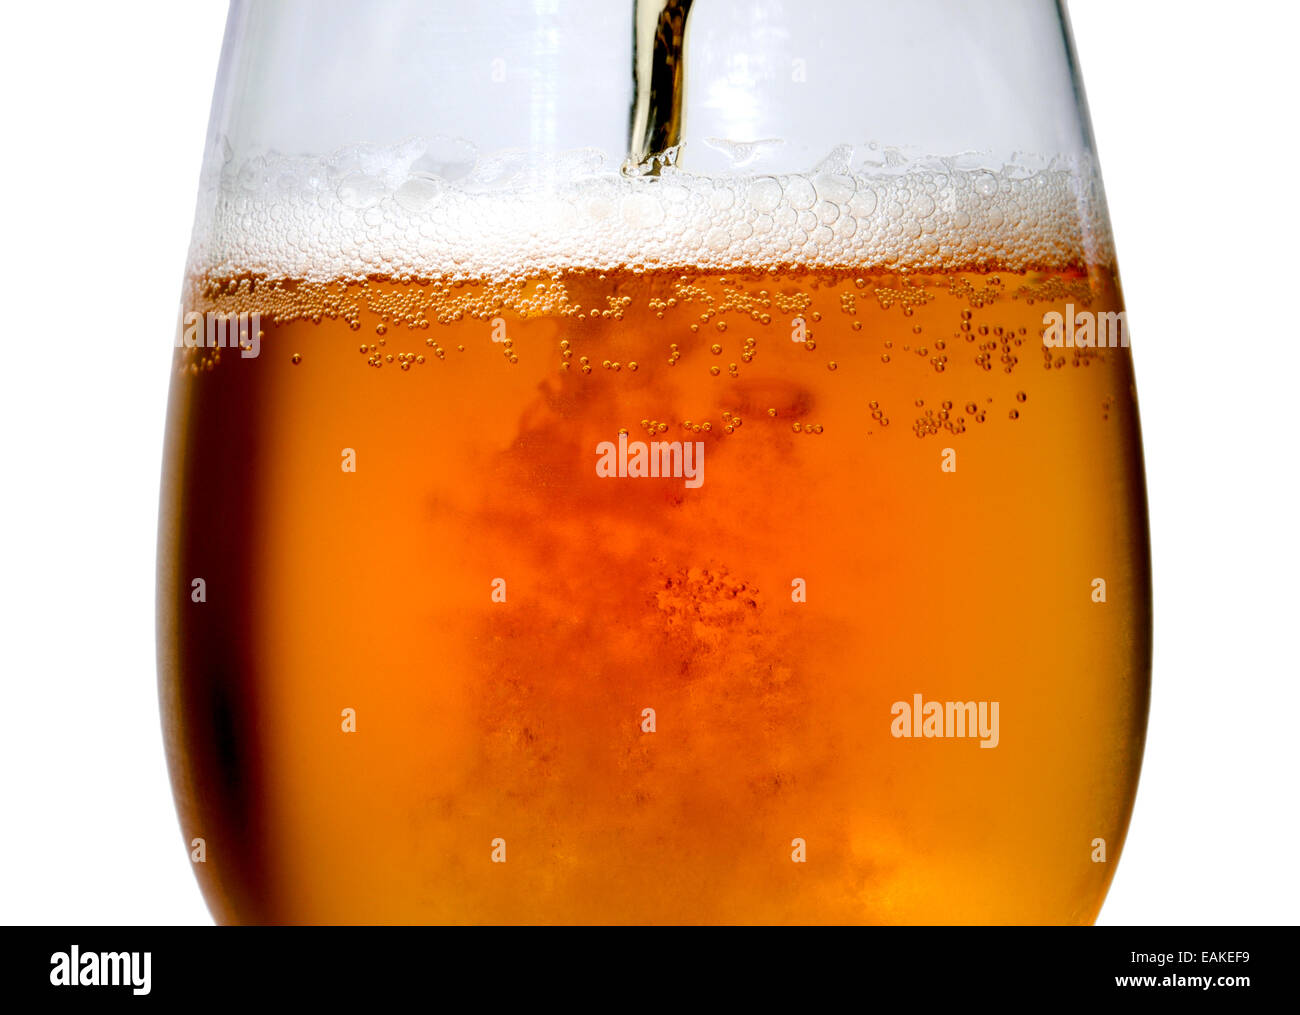 Beer being poured into a large glass - Stock Image